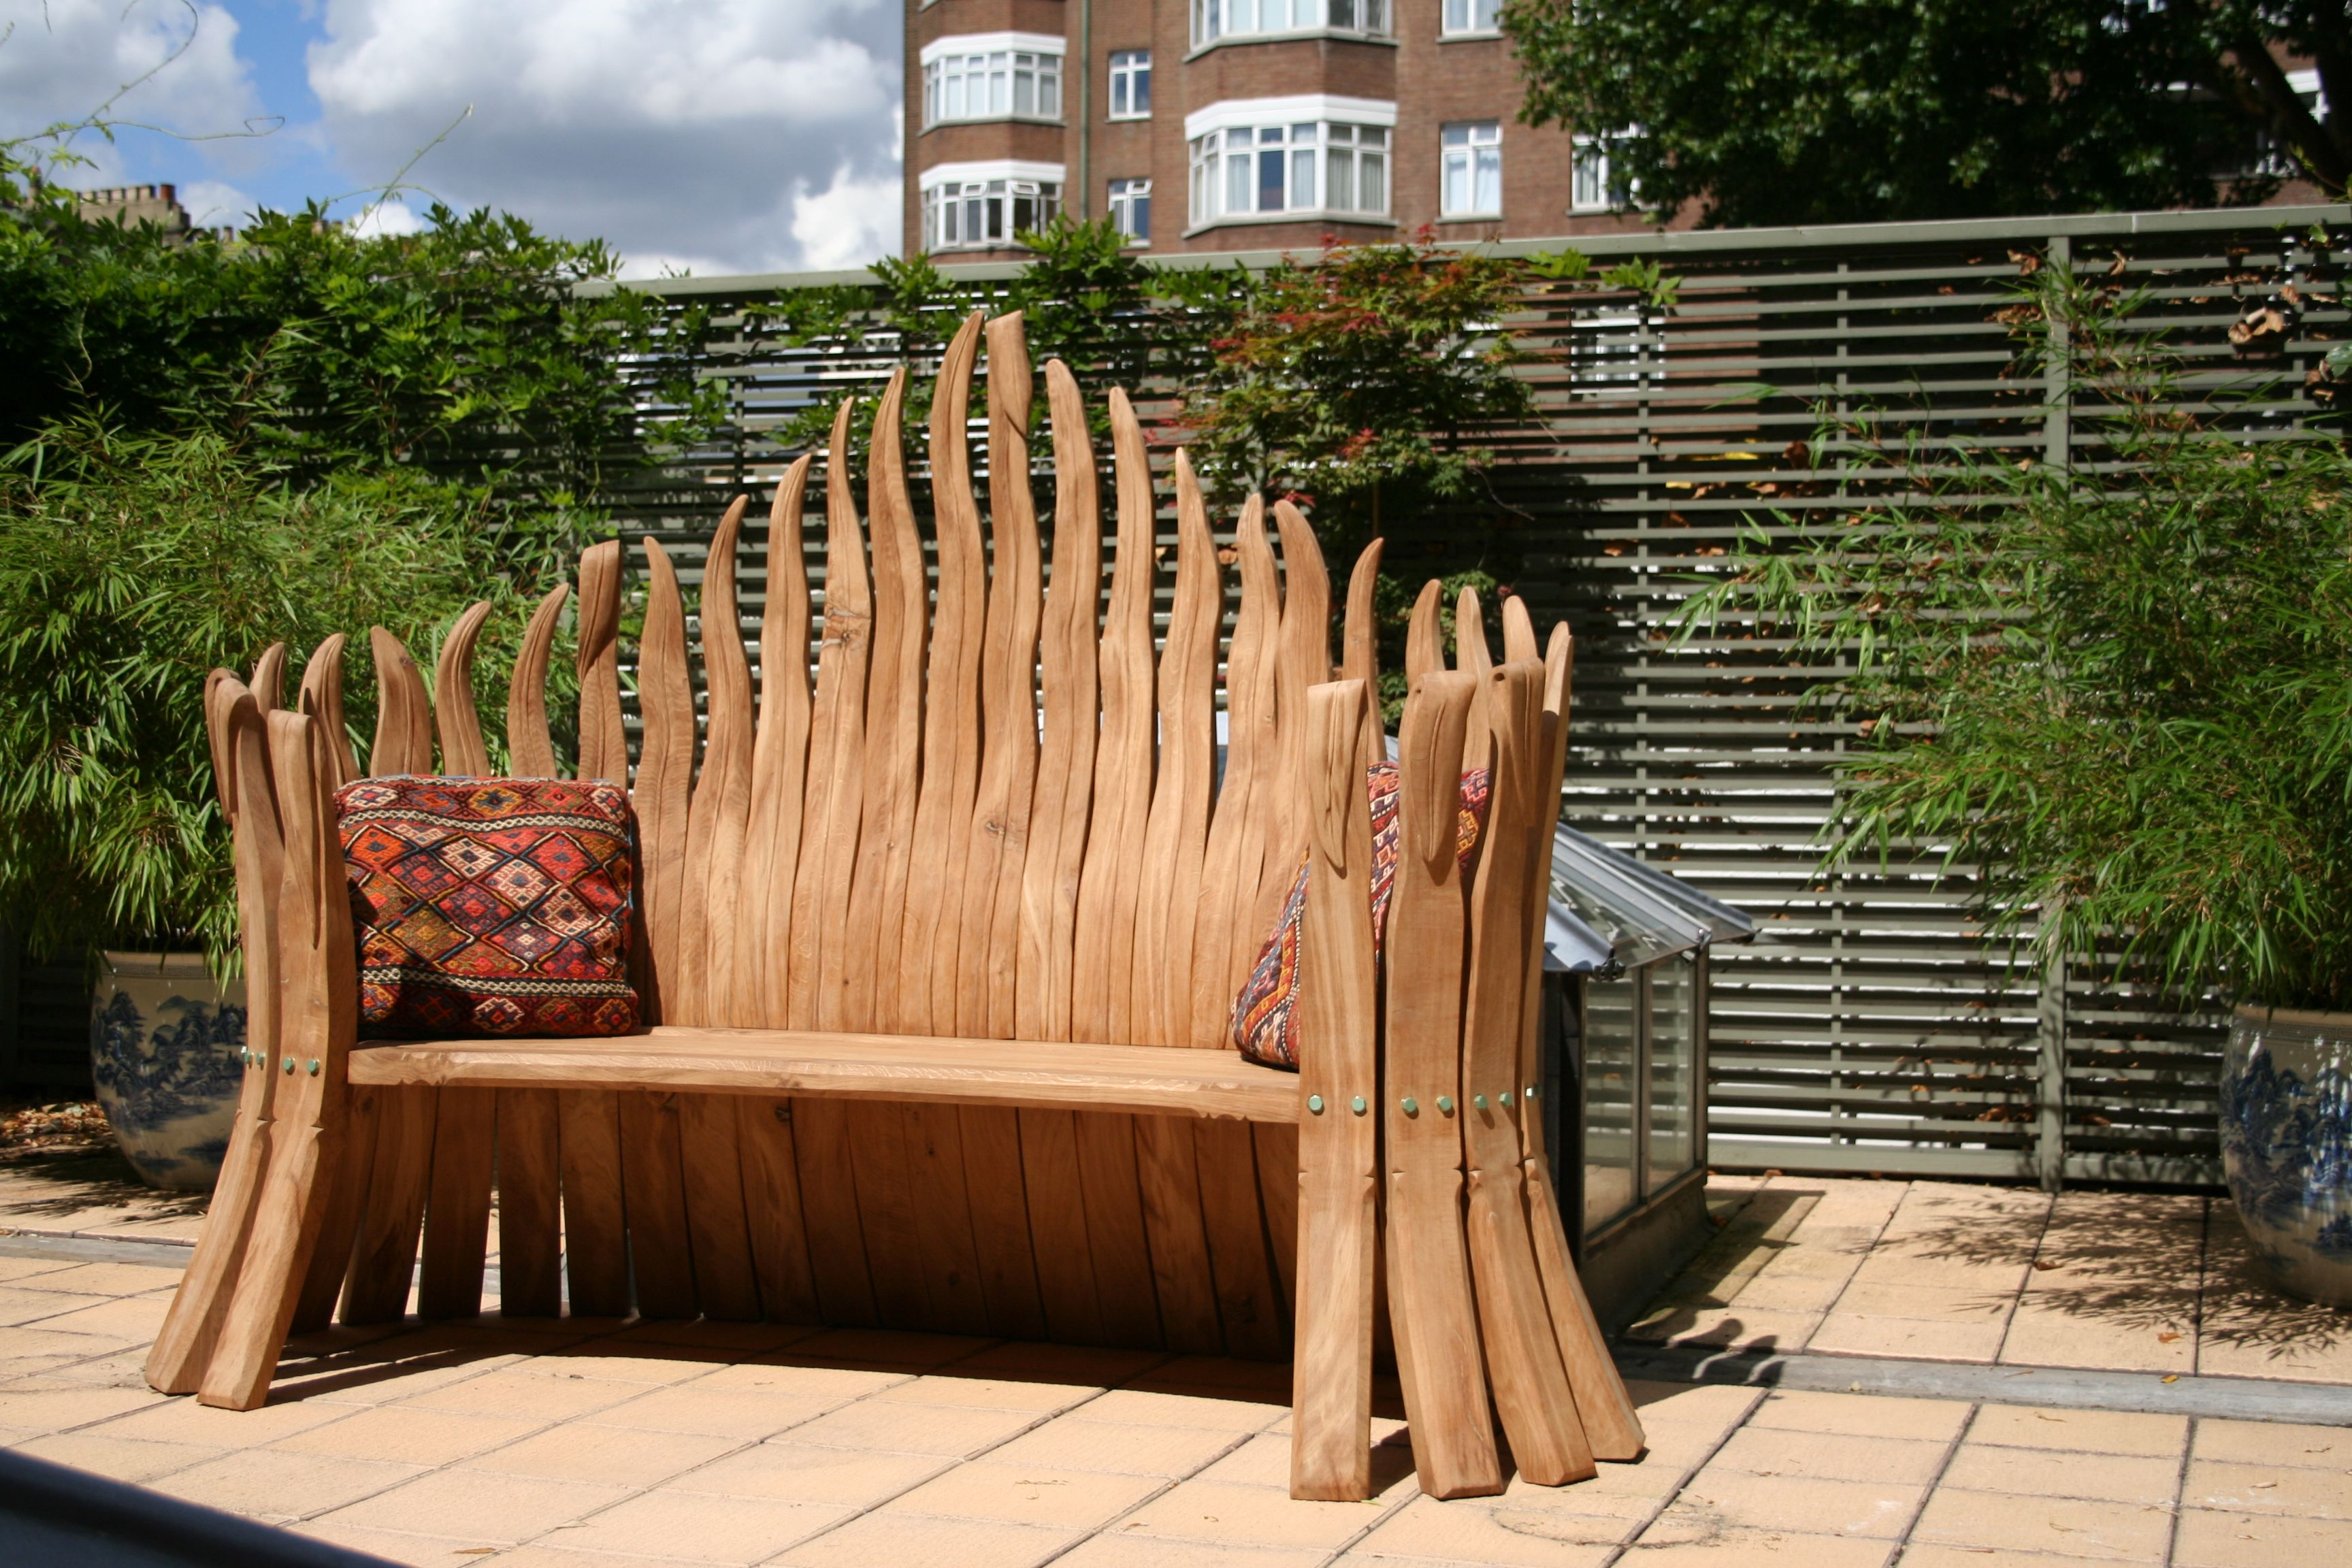 Bull Rush garden bench designed and made by Lillyfee ...